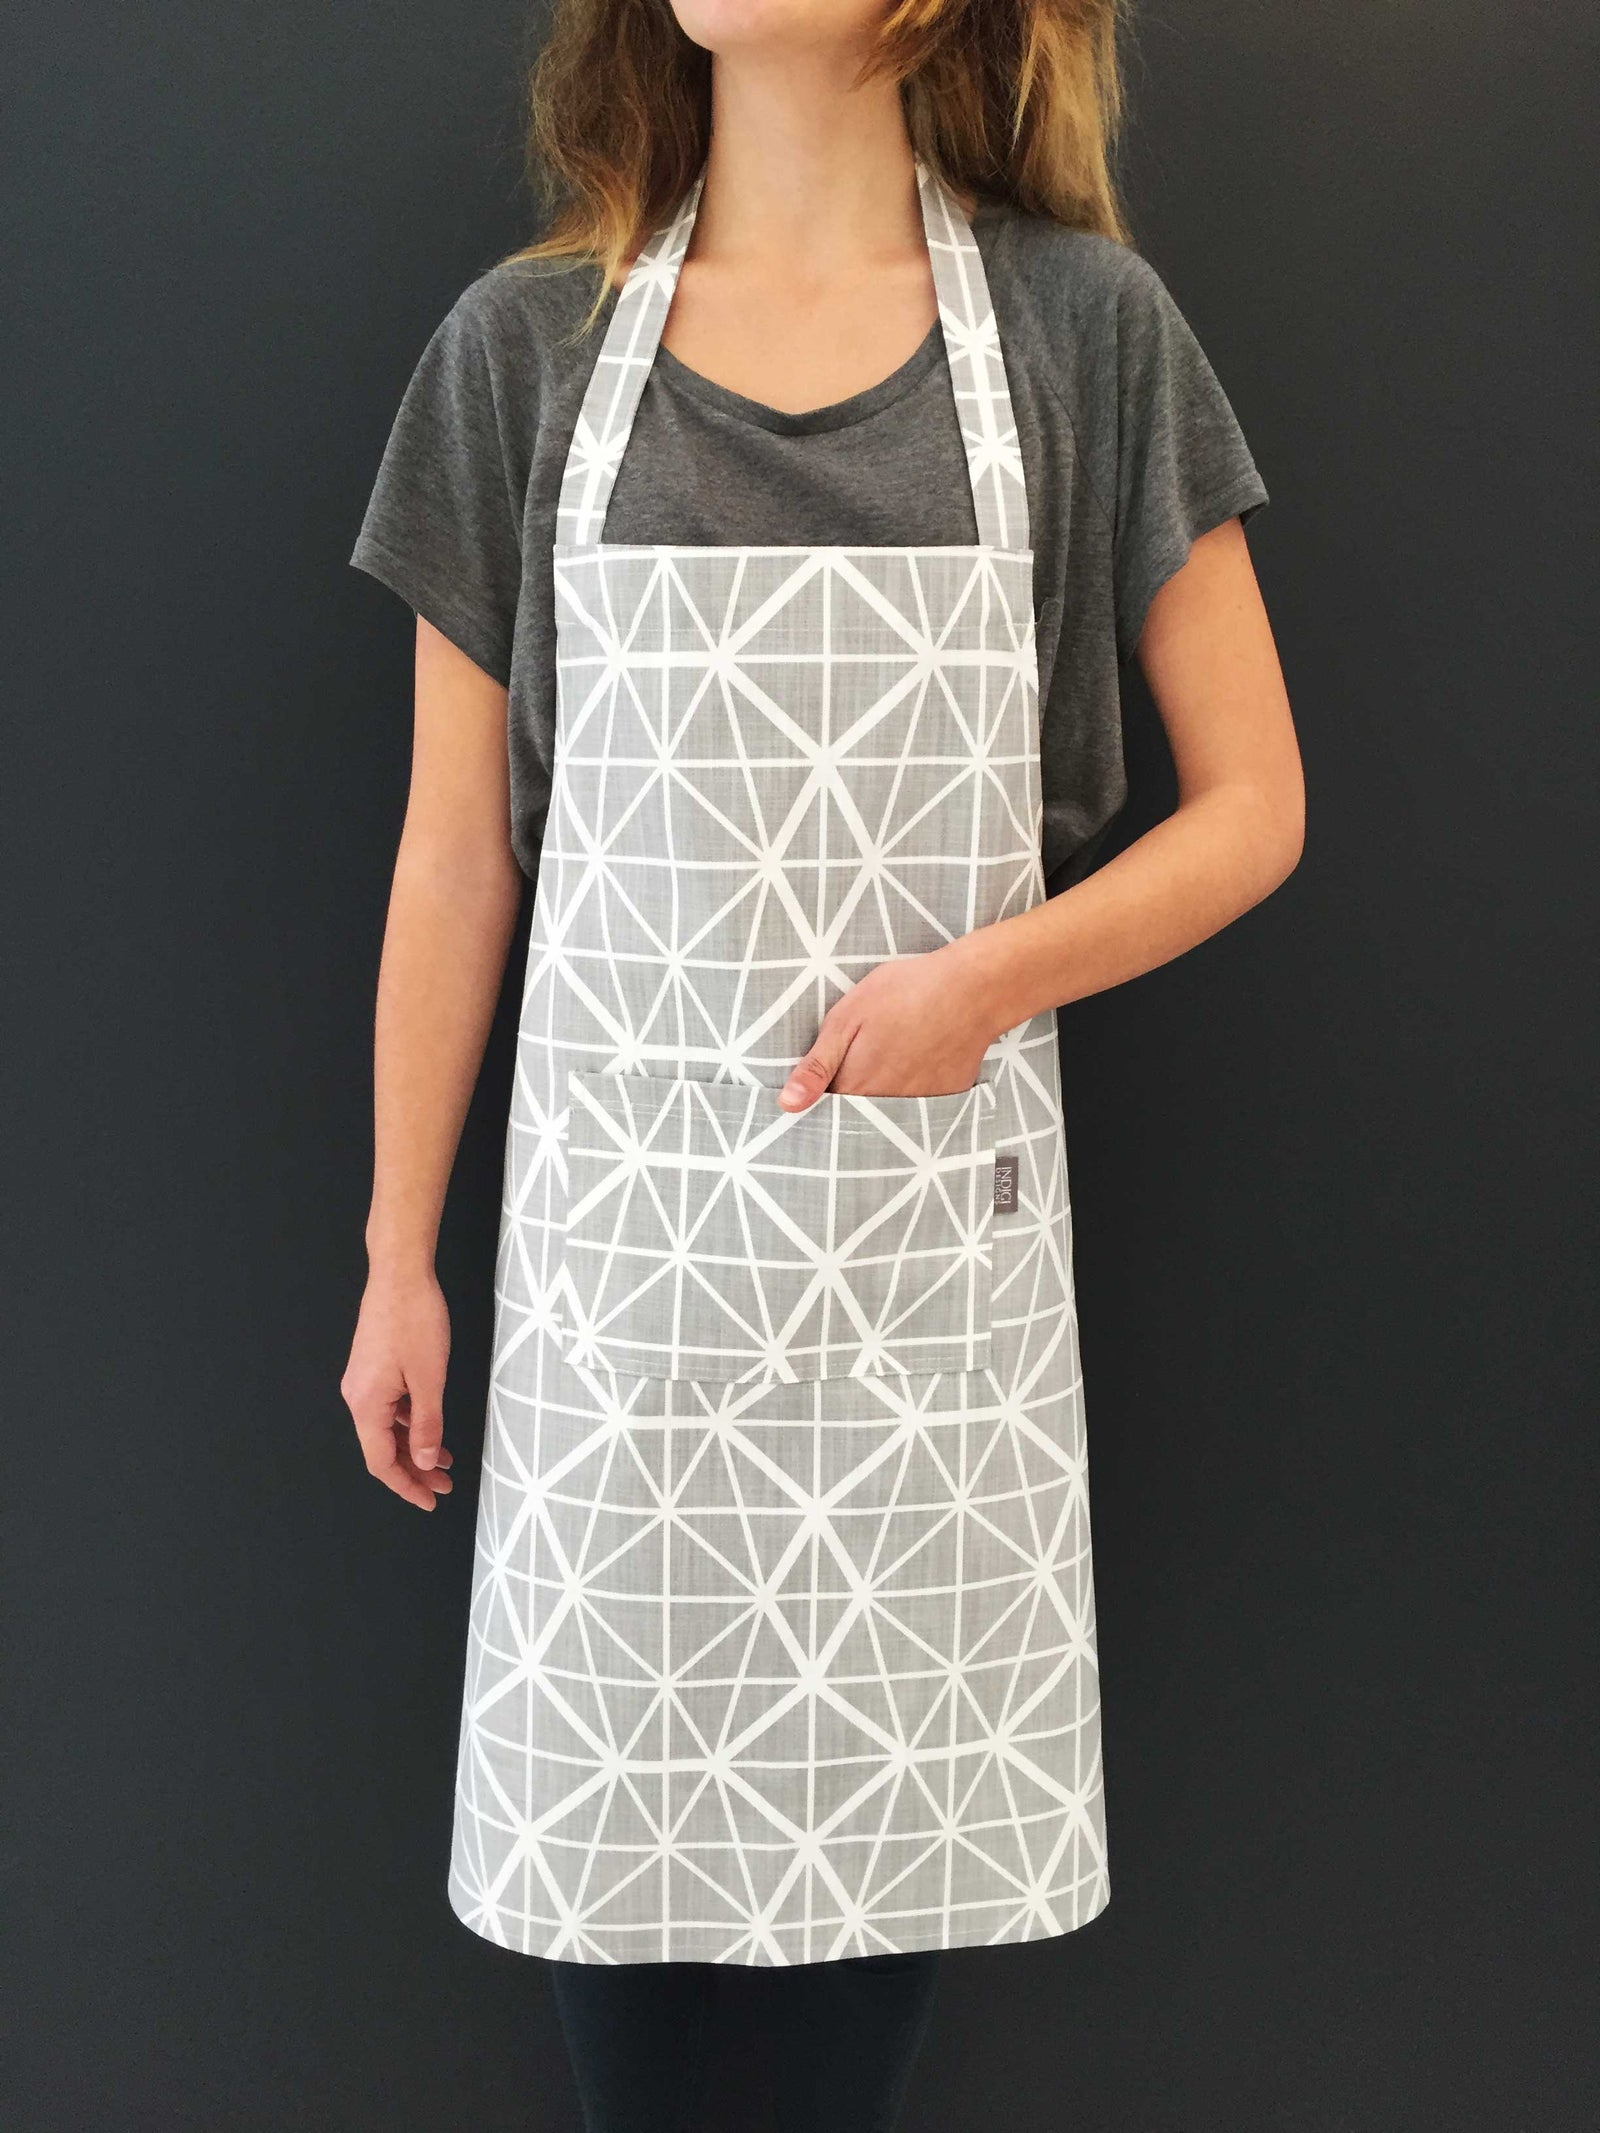 Facet Grey Apron